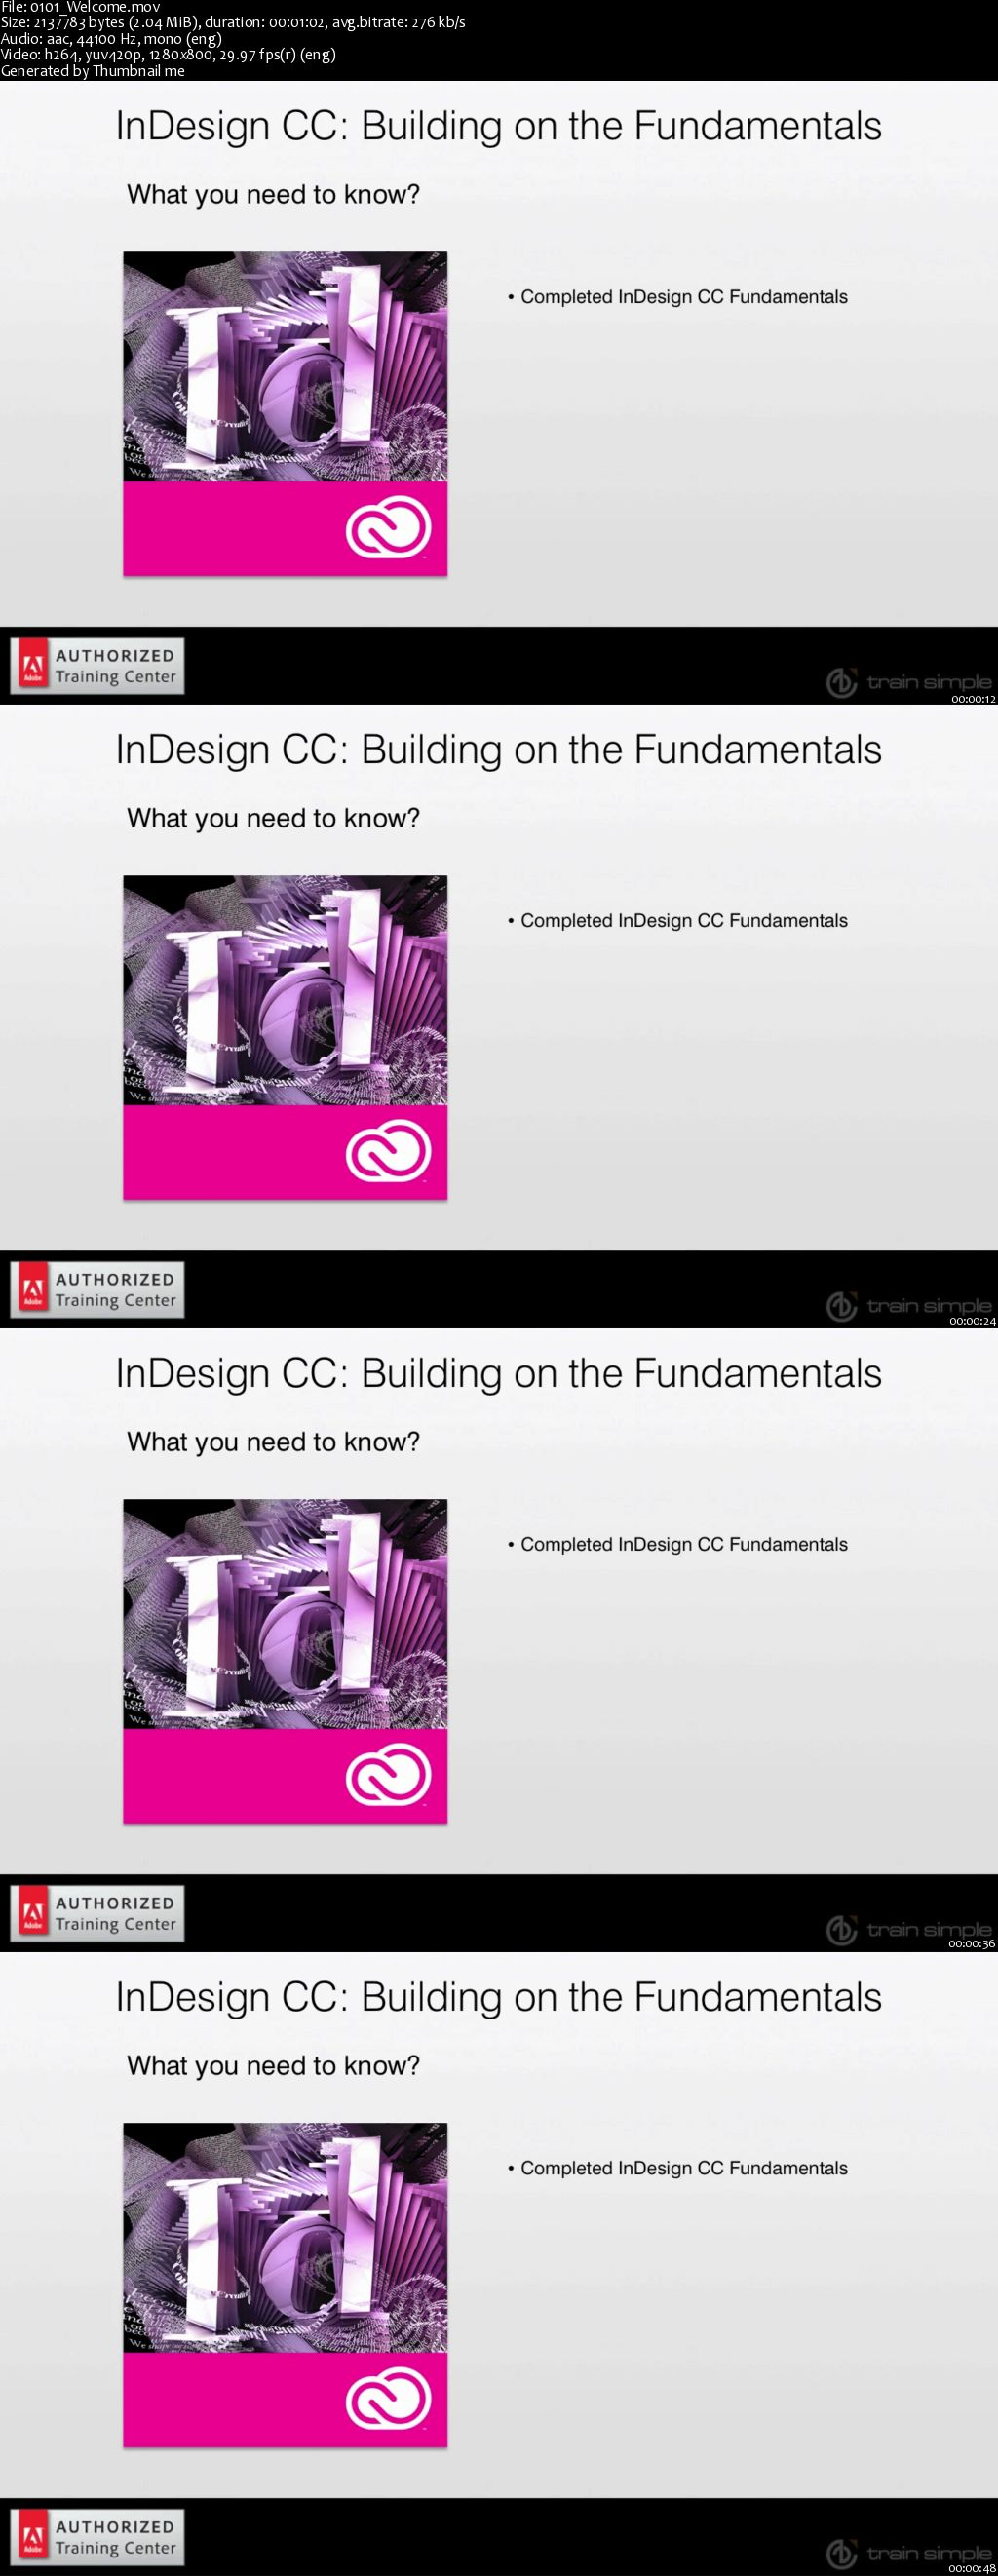 InDesign CC Building on the Fundamentals